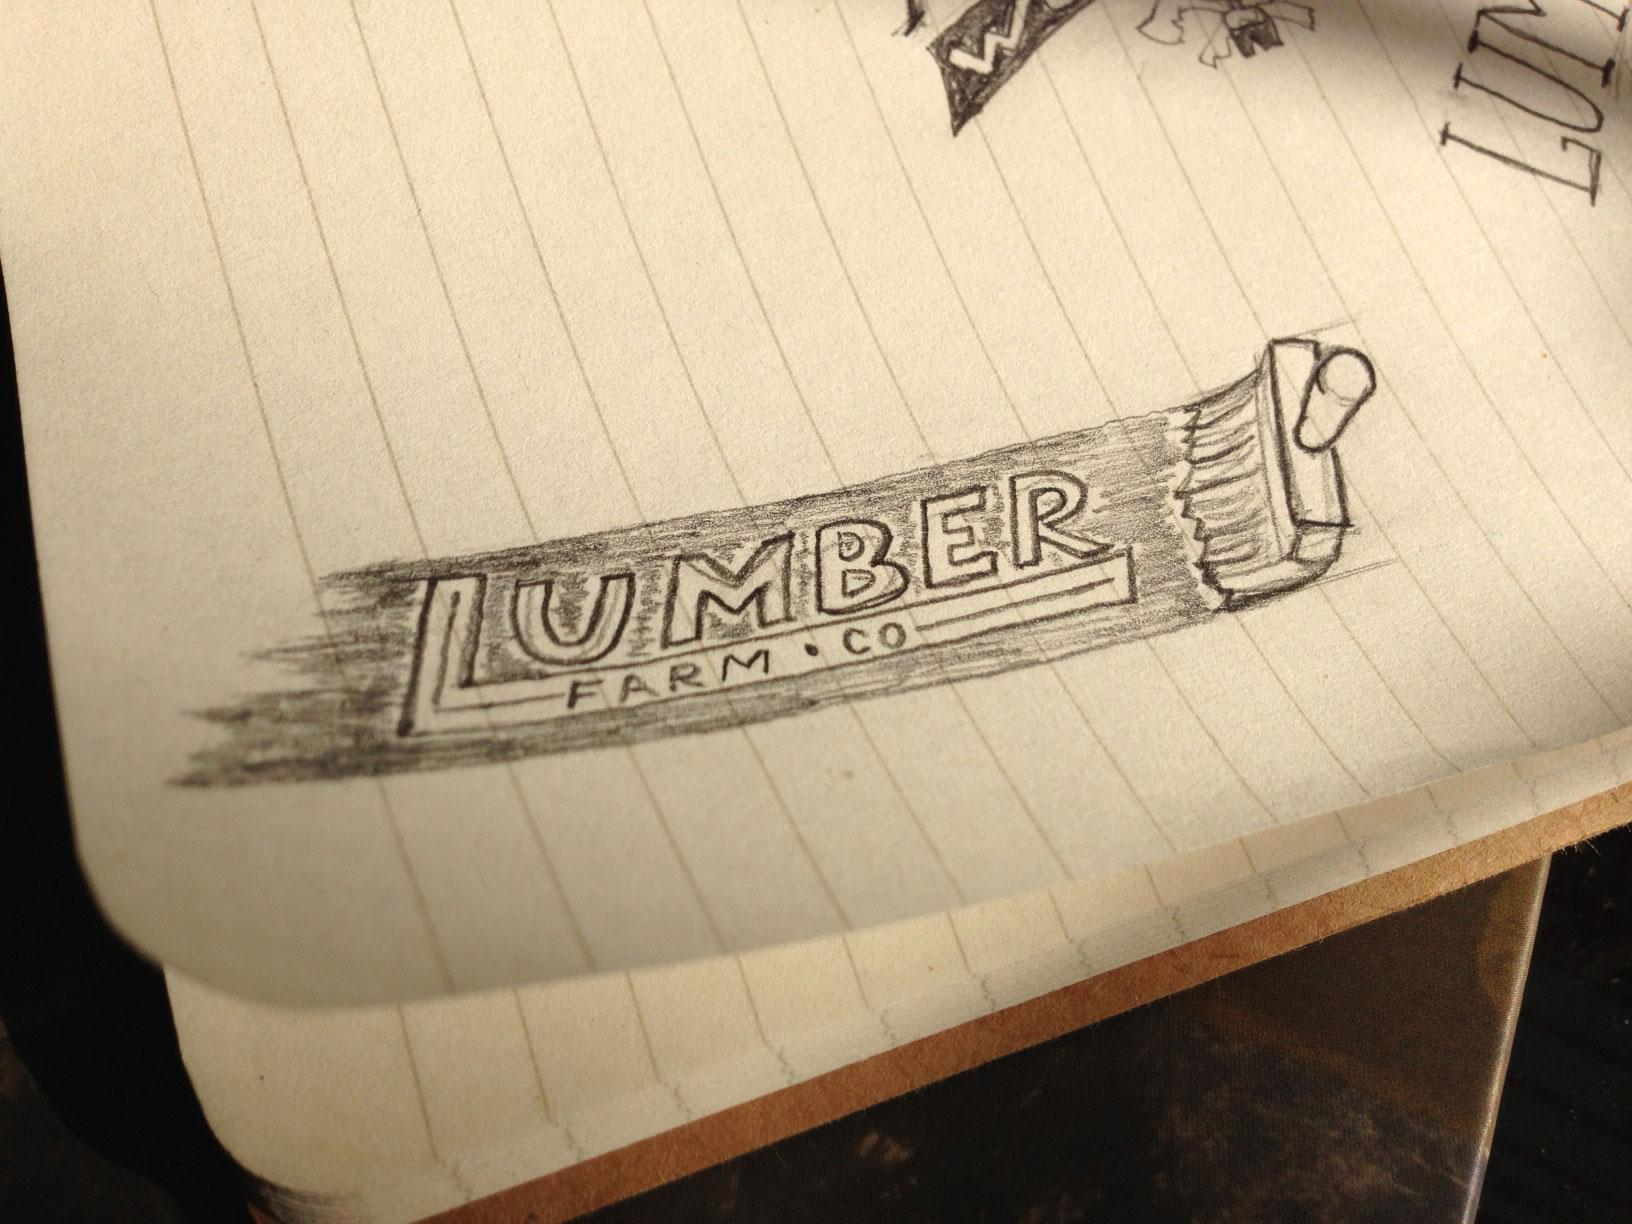 The Lumber Farm - image 8 - student project